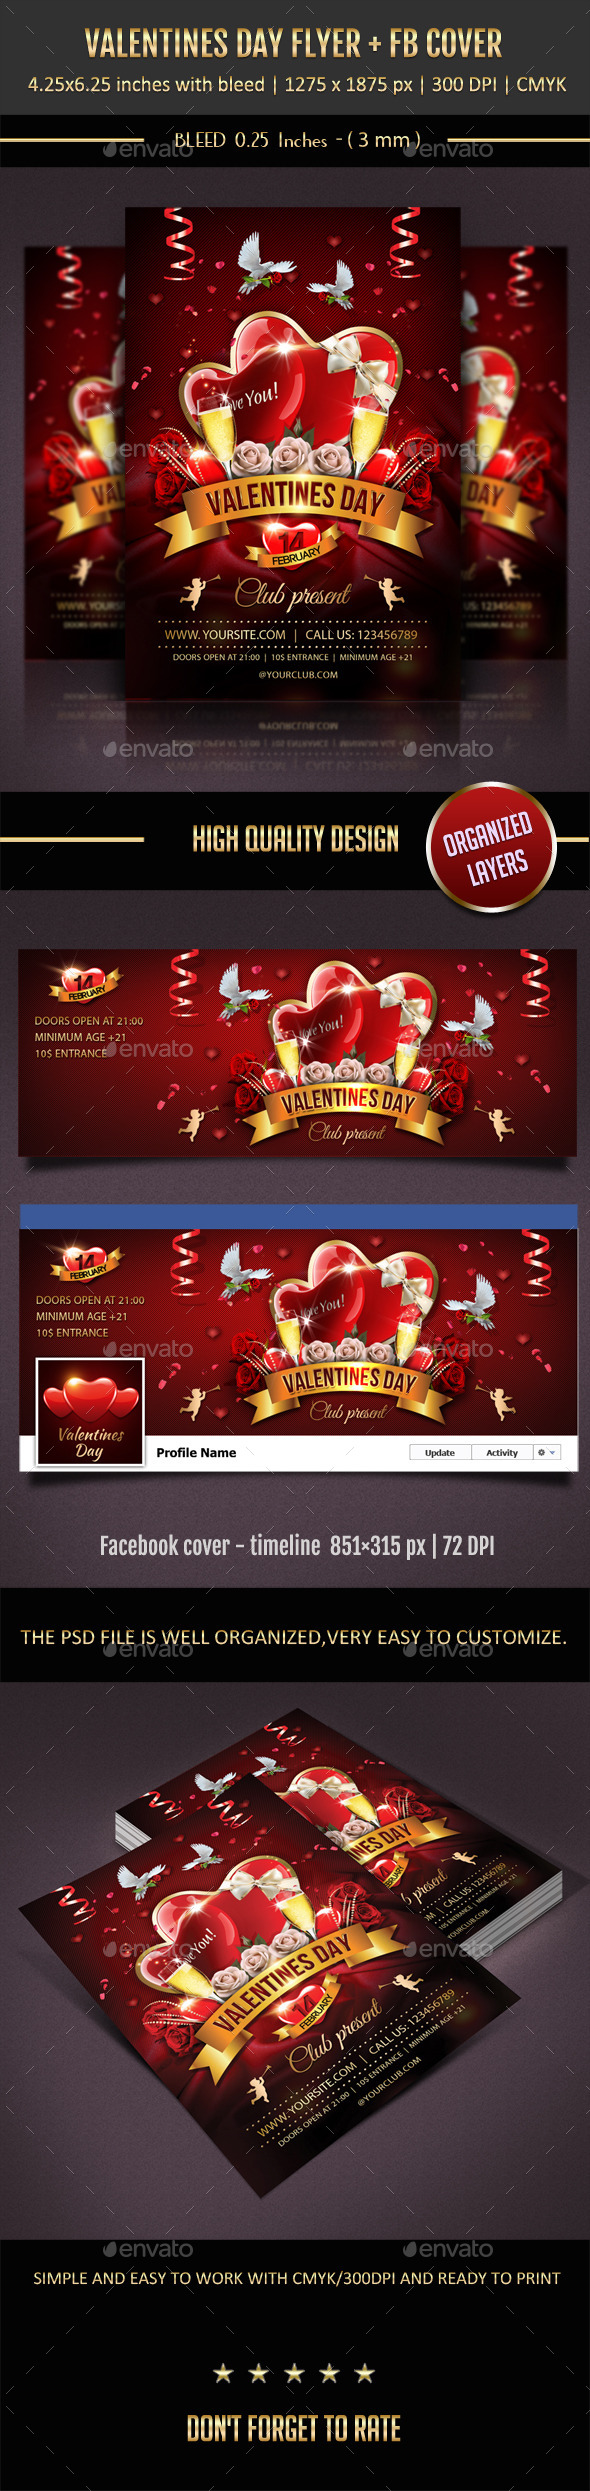 Valentines Day Flyer + Facebook Cover - Events Flyers